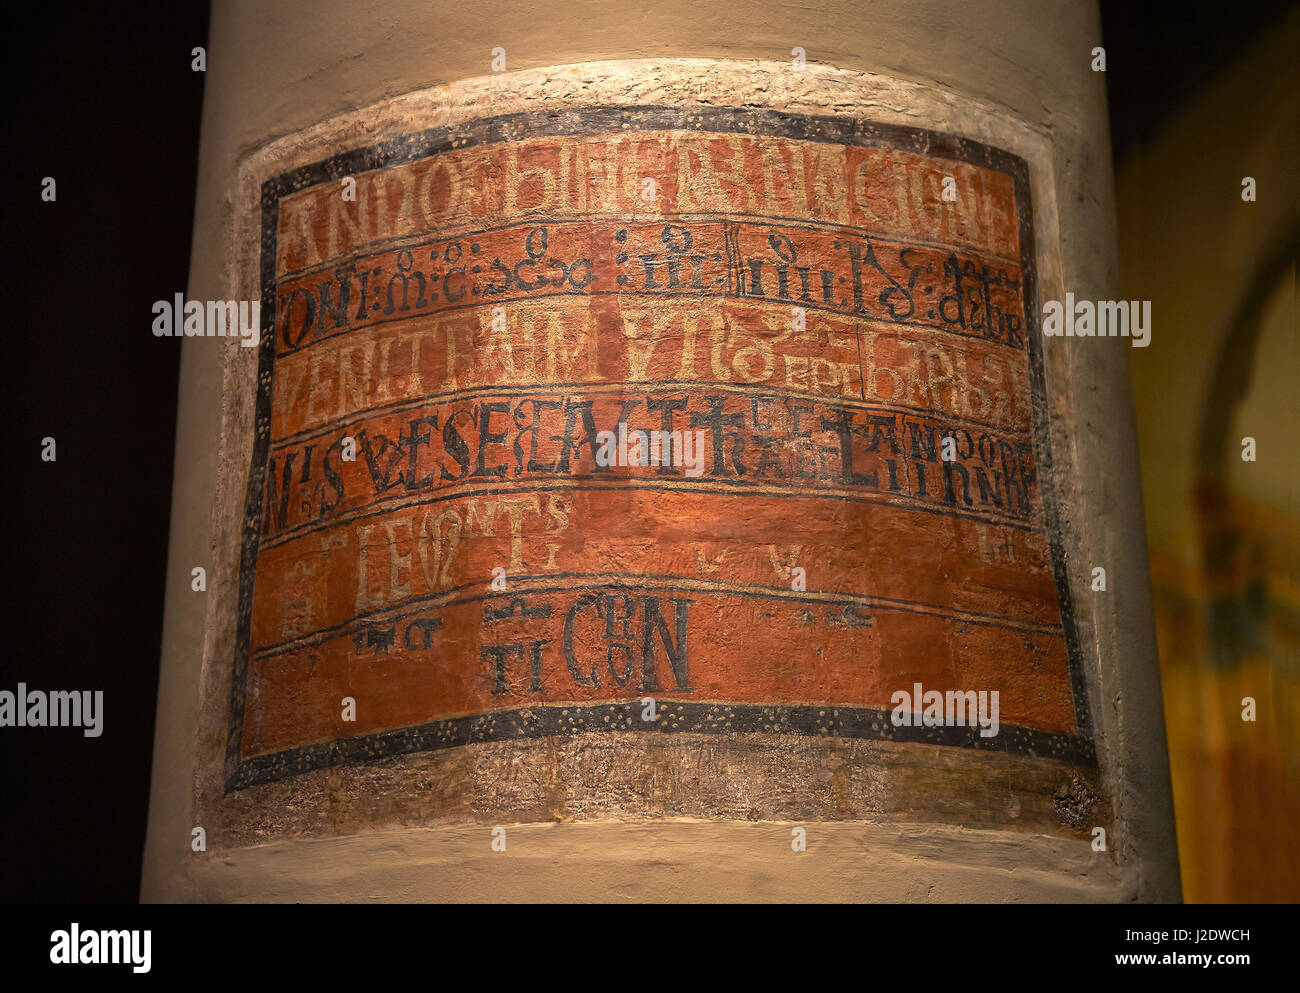 Romanesque frescoes from the Church of Sant Clement de Taull, Vall de Boi, Alta Ribagorca, Spain. Painted around - Stock Image